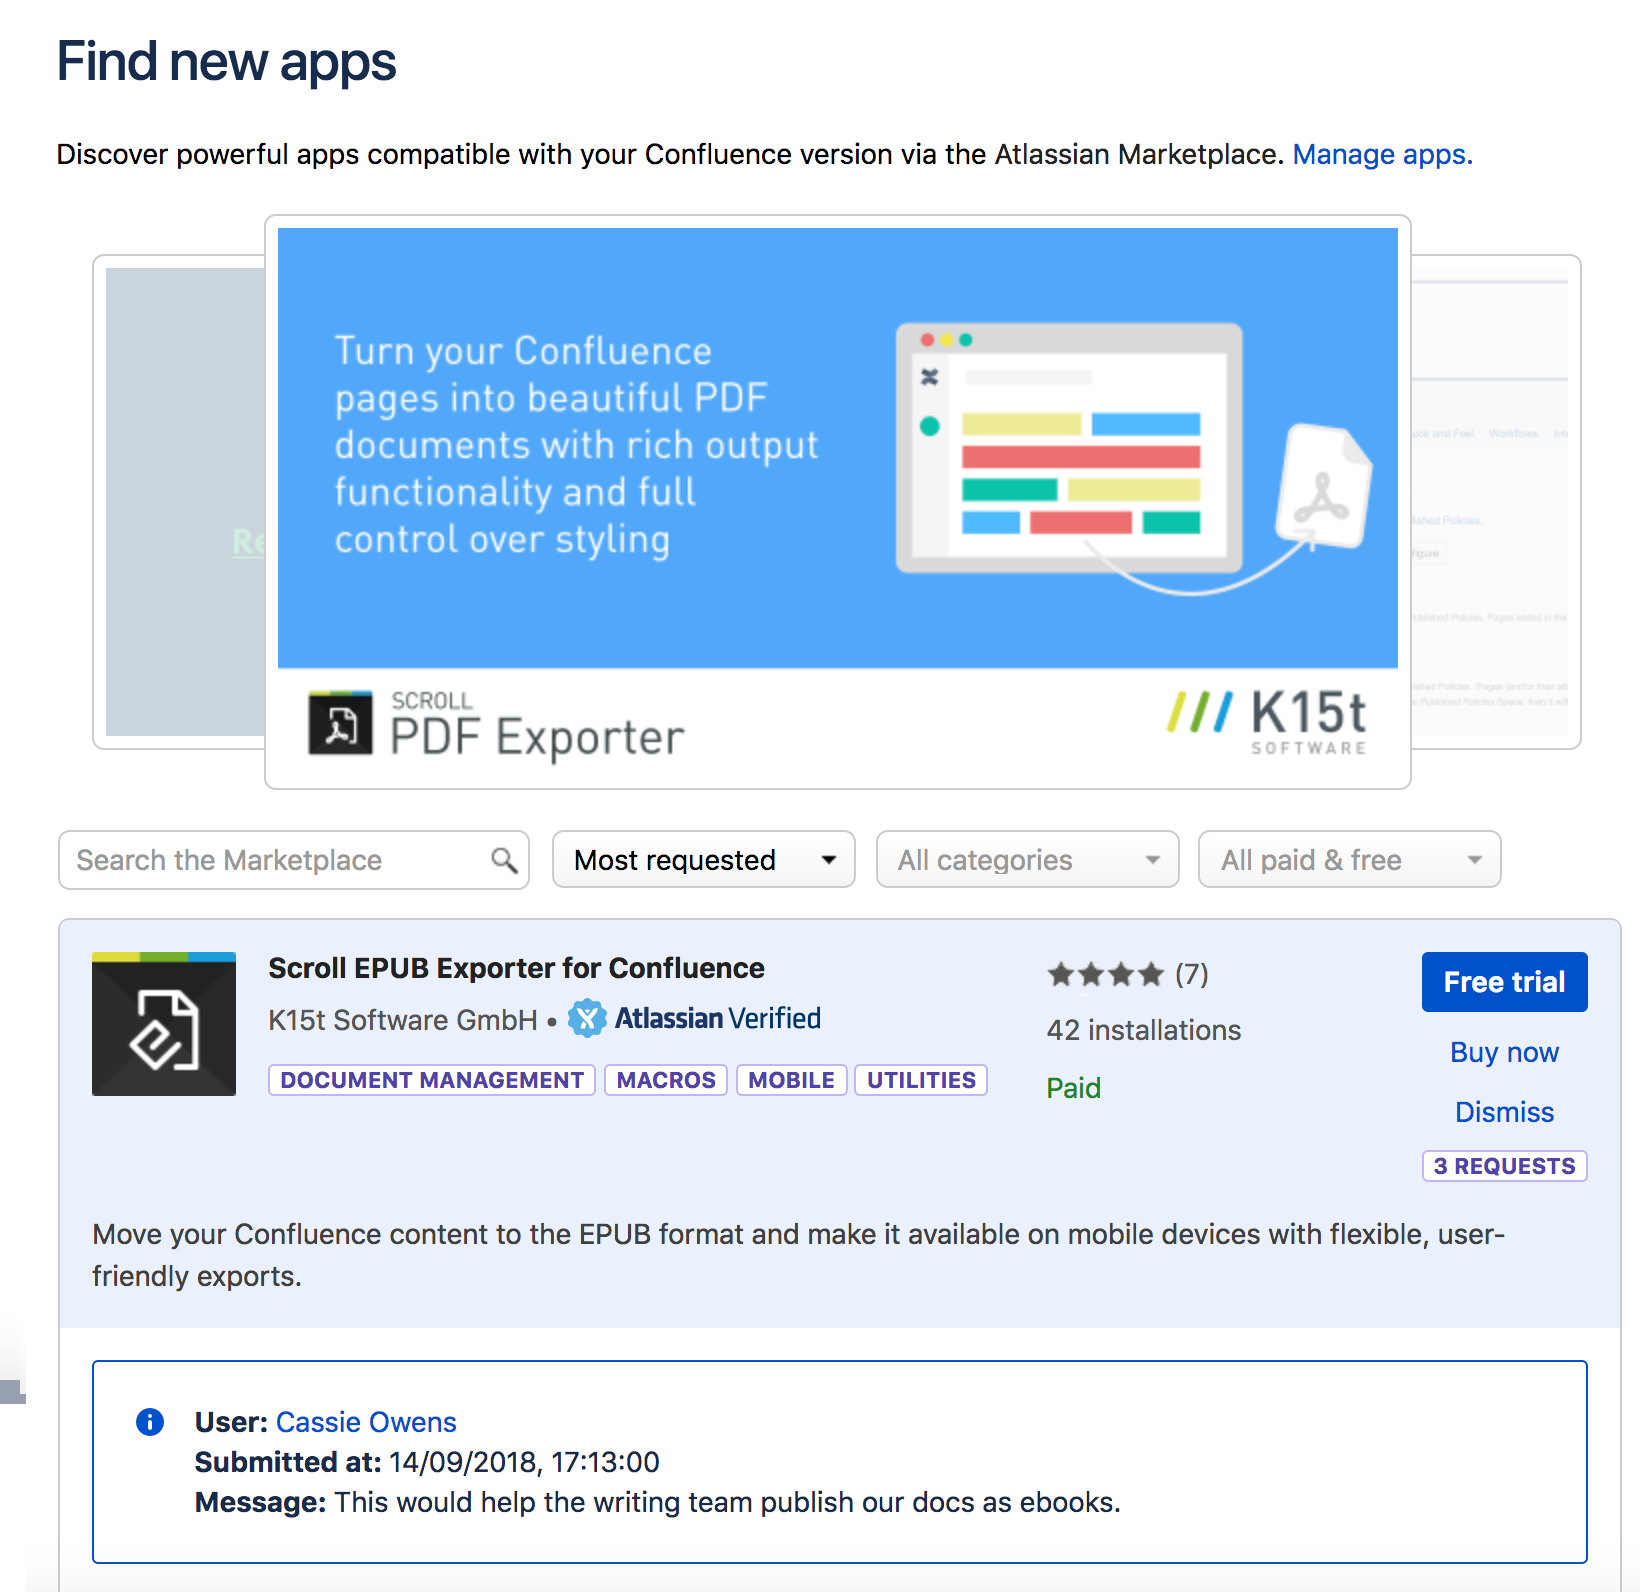 managing user requests for marketplace apps atlassian documentation